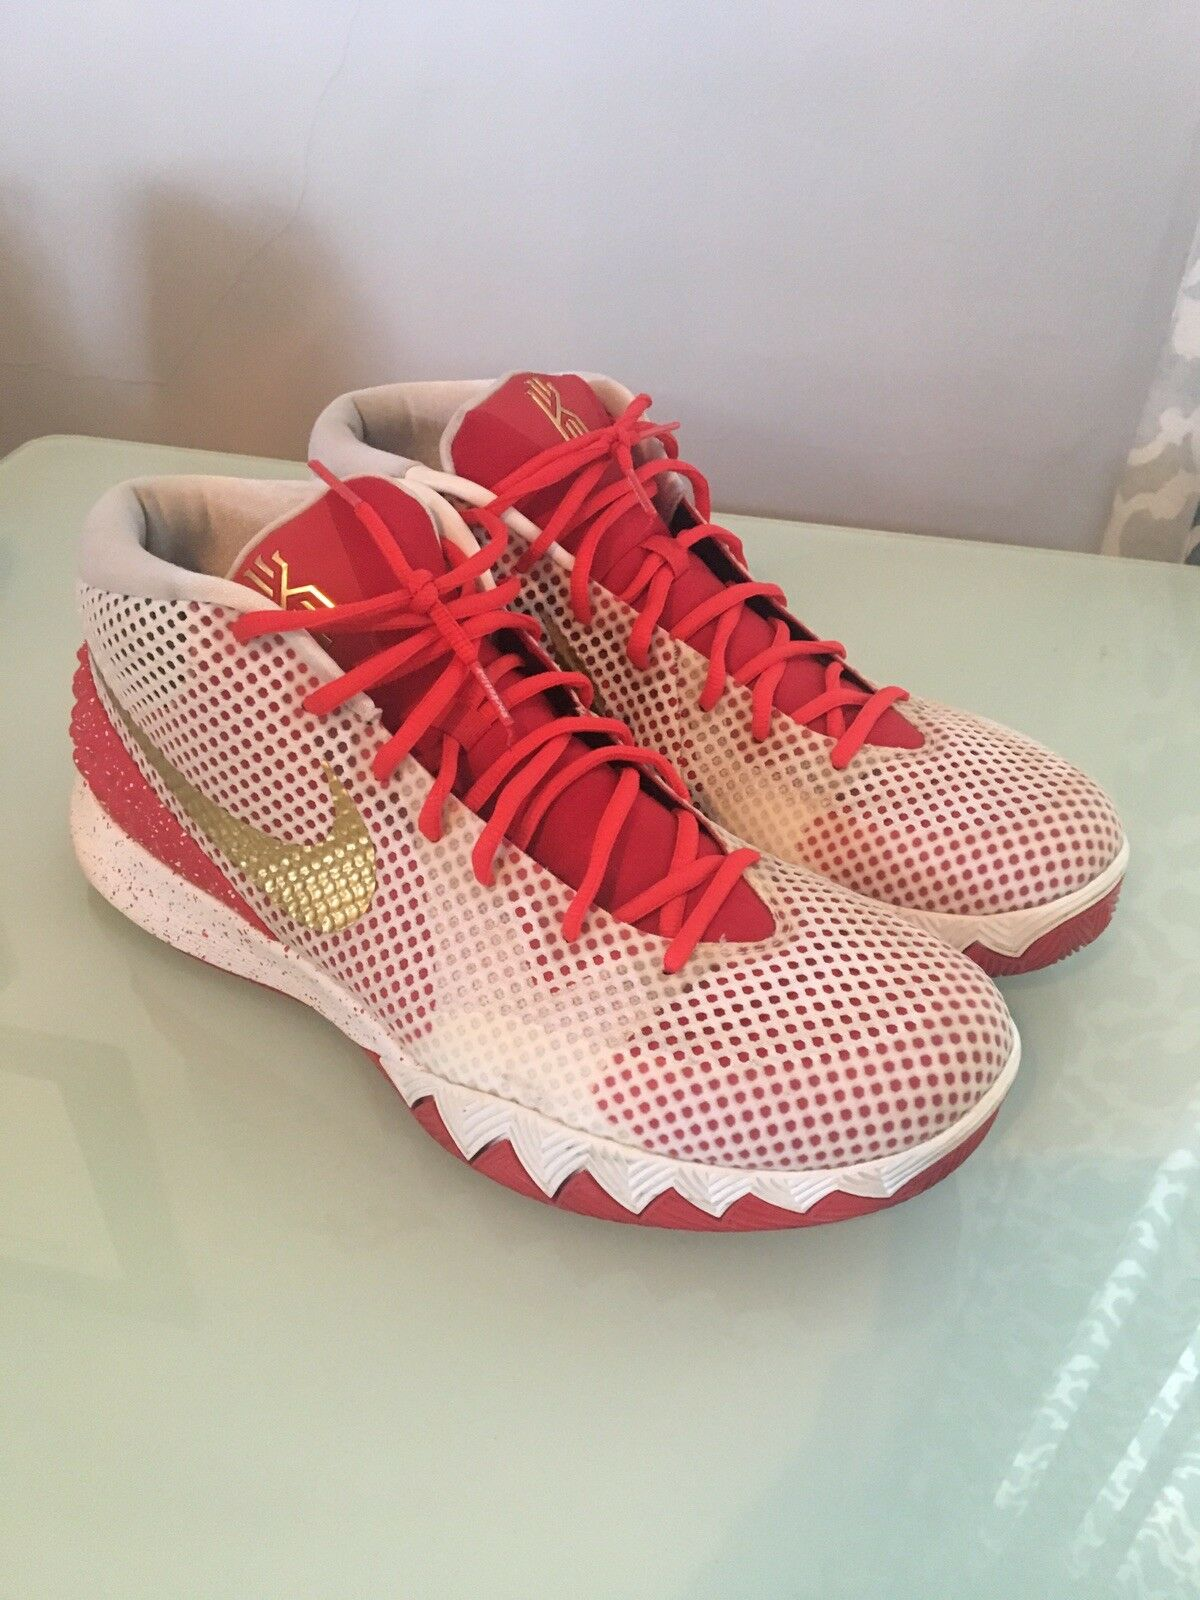 Nike Kyrie 1 ID White Red gold Sz 12.5